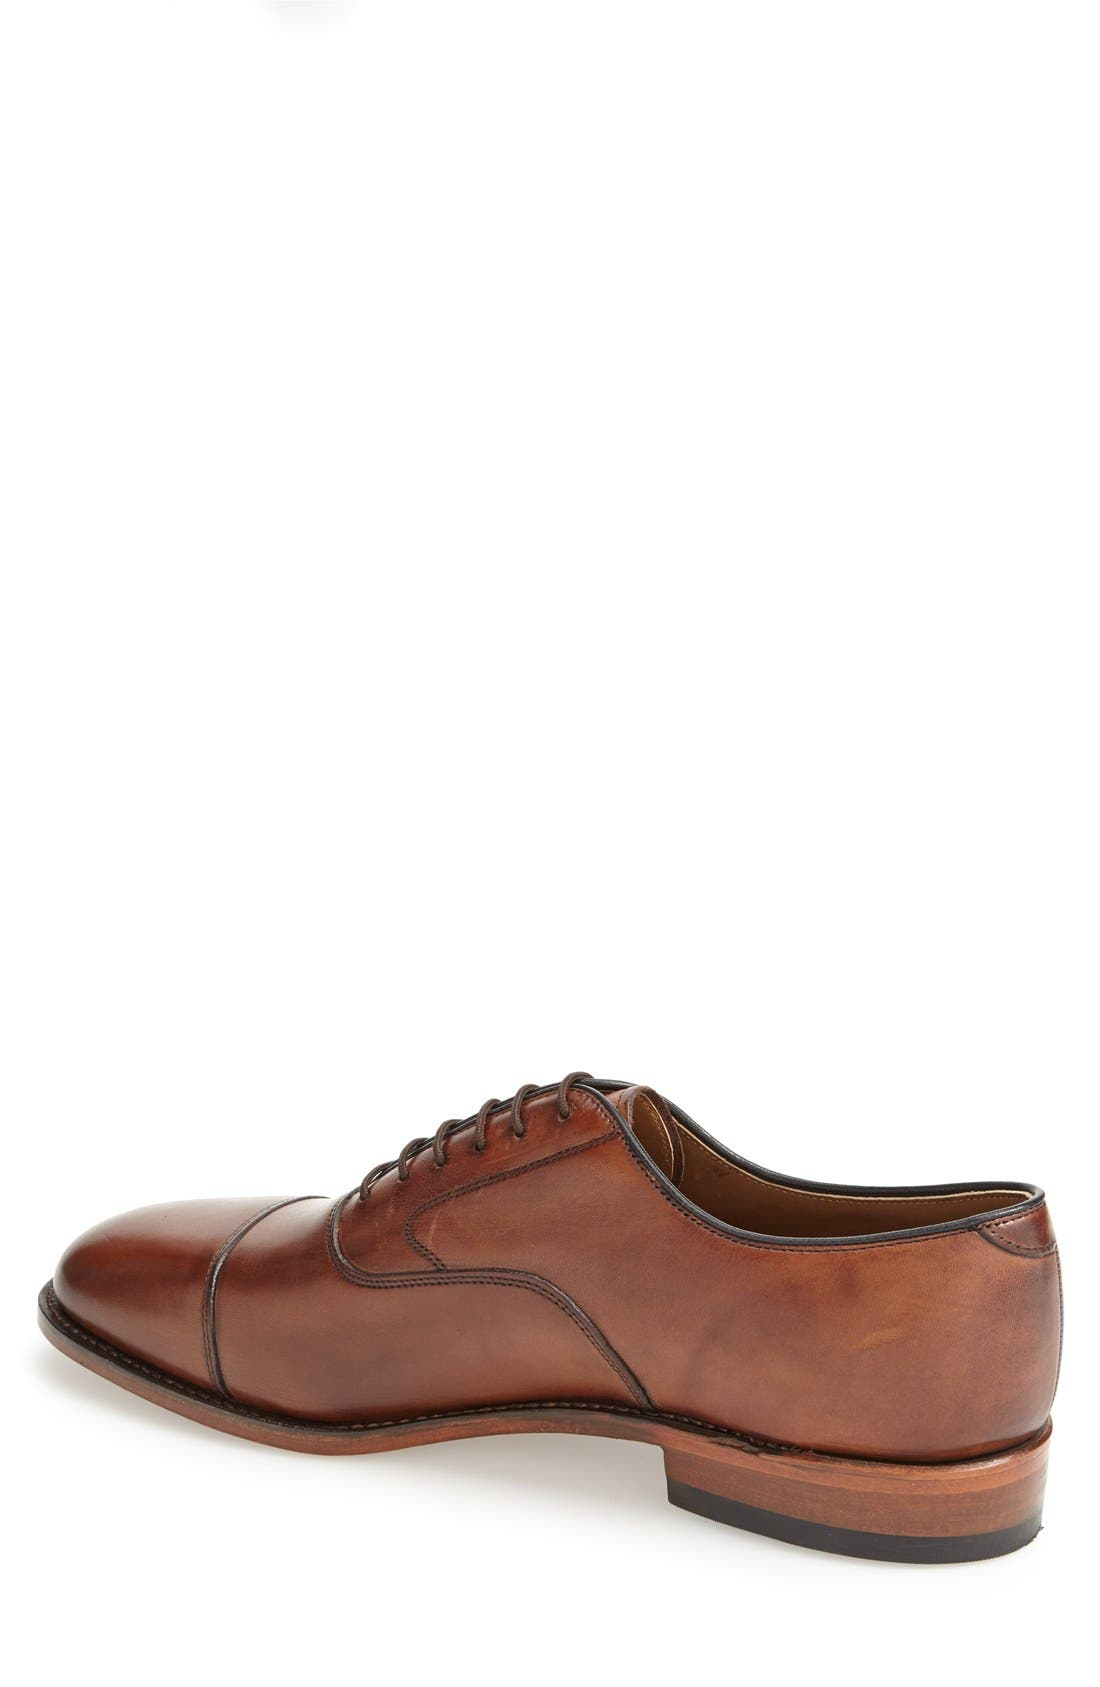 Alternate Image 2  - Johnston & Murphy 'Melton' Oxford (Men)